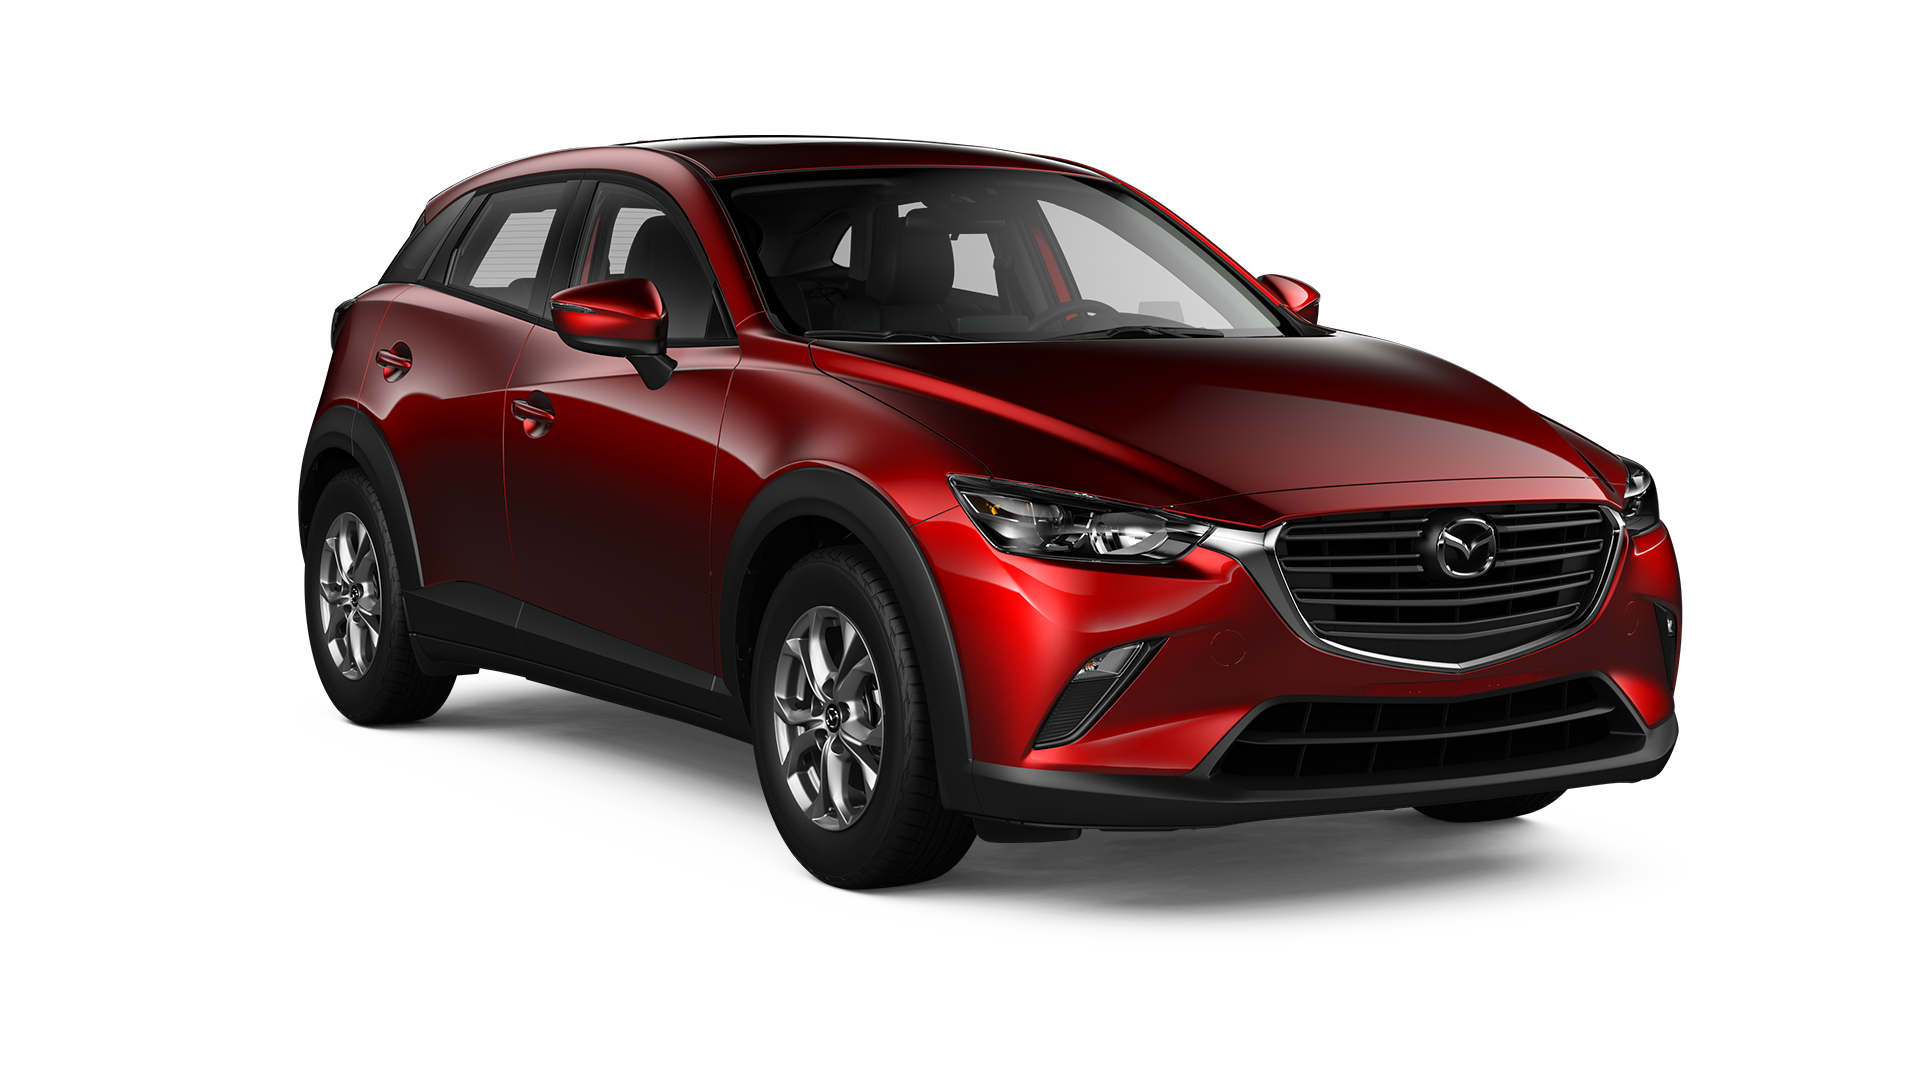 2019 cx 3 subcompact crossover suv mazda canada. Black Bedroom Furniture Sets. Home Design Ideas